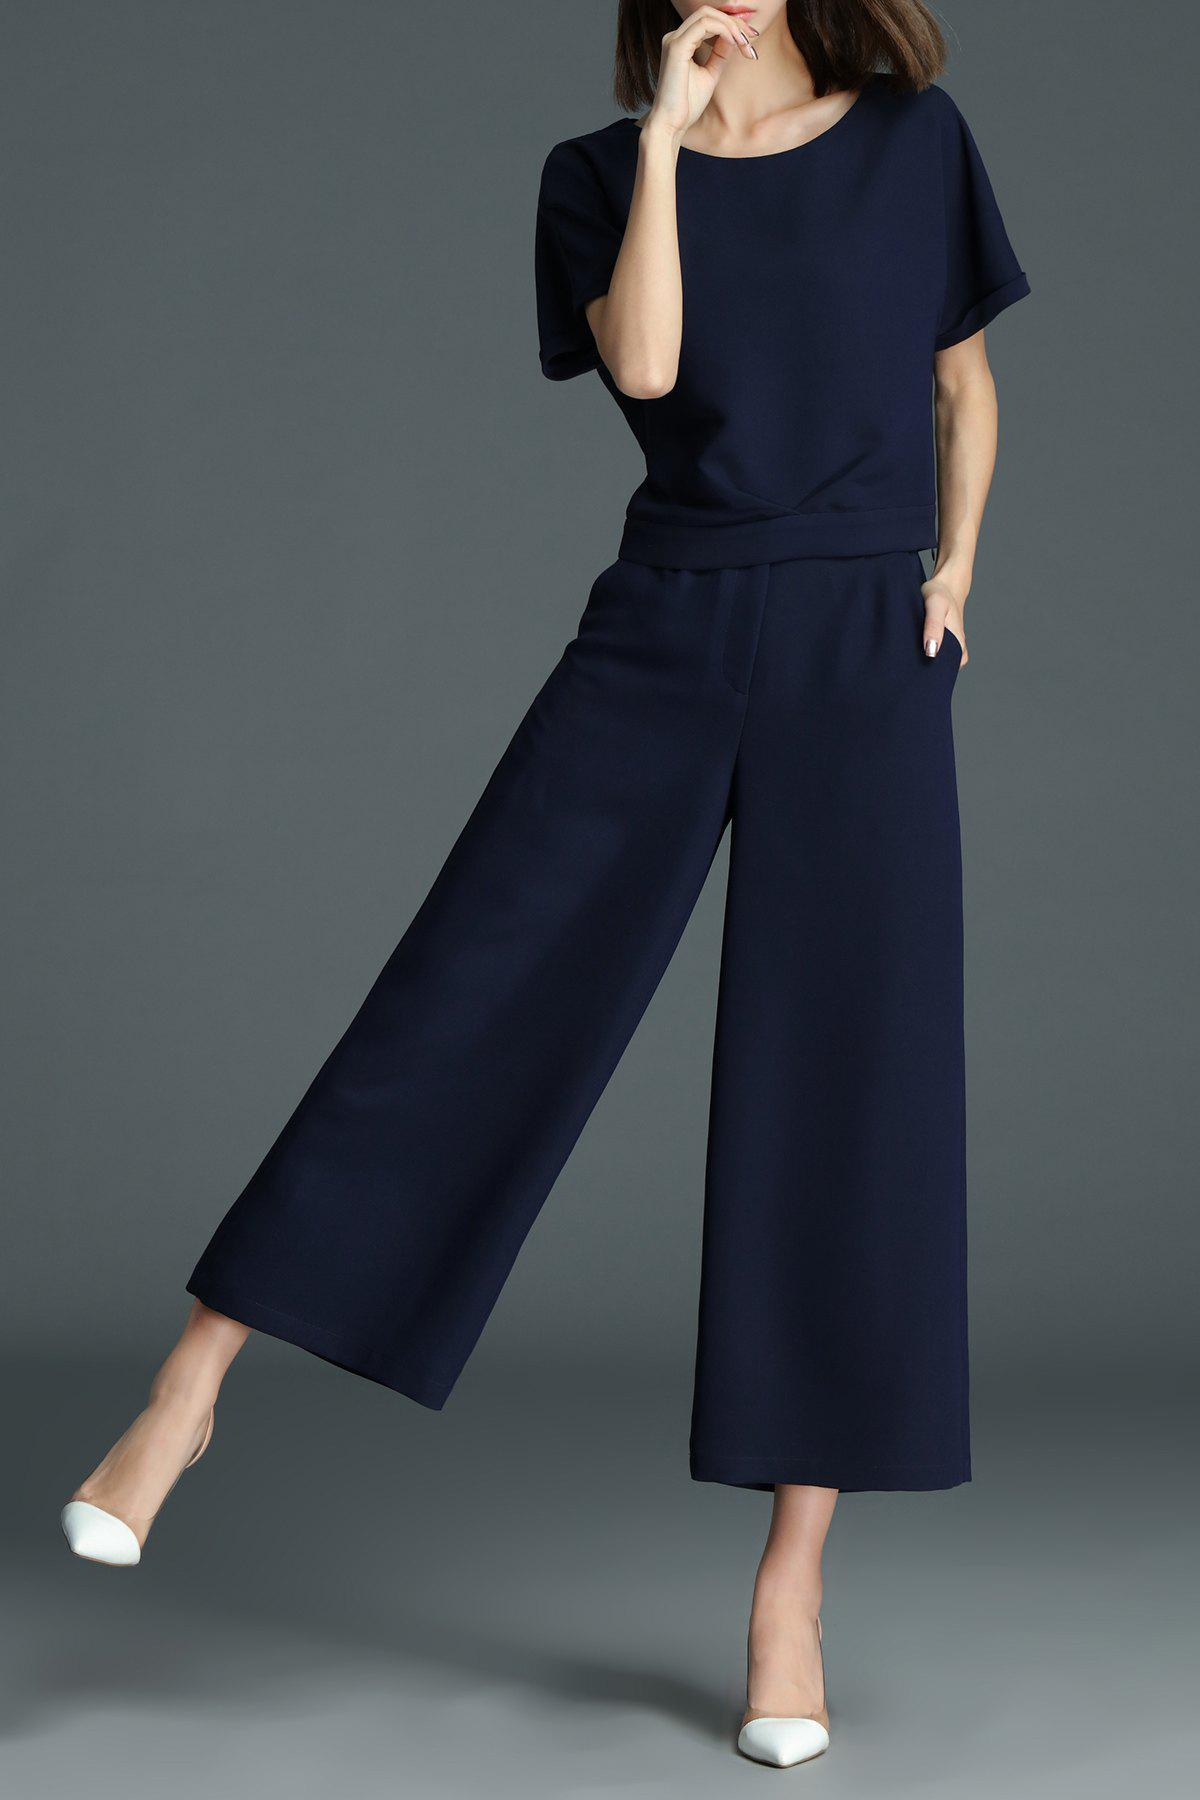 86 Off 2018 T Shirt With Palazzo Pants In Deep Blue